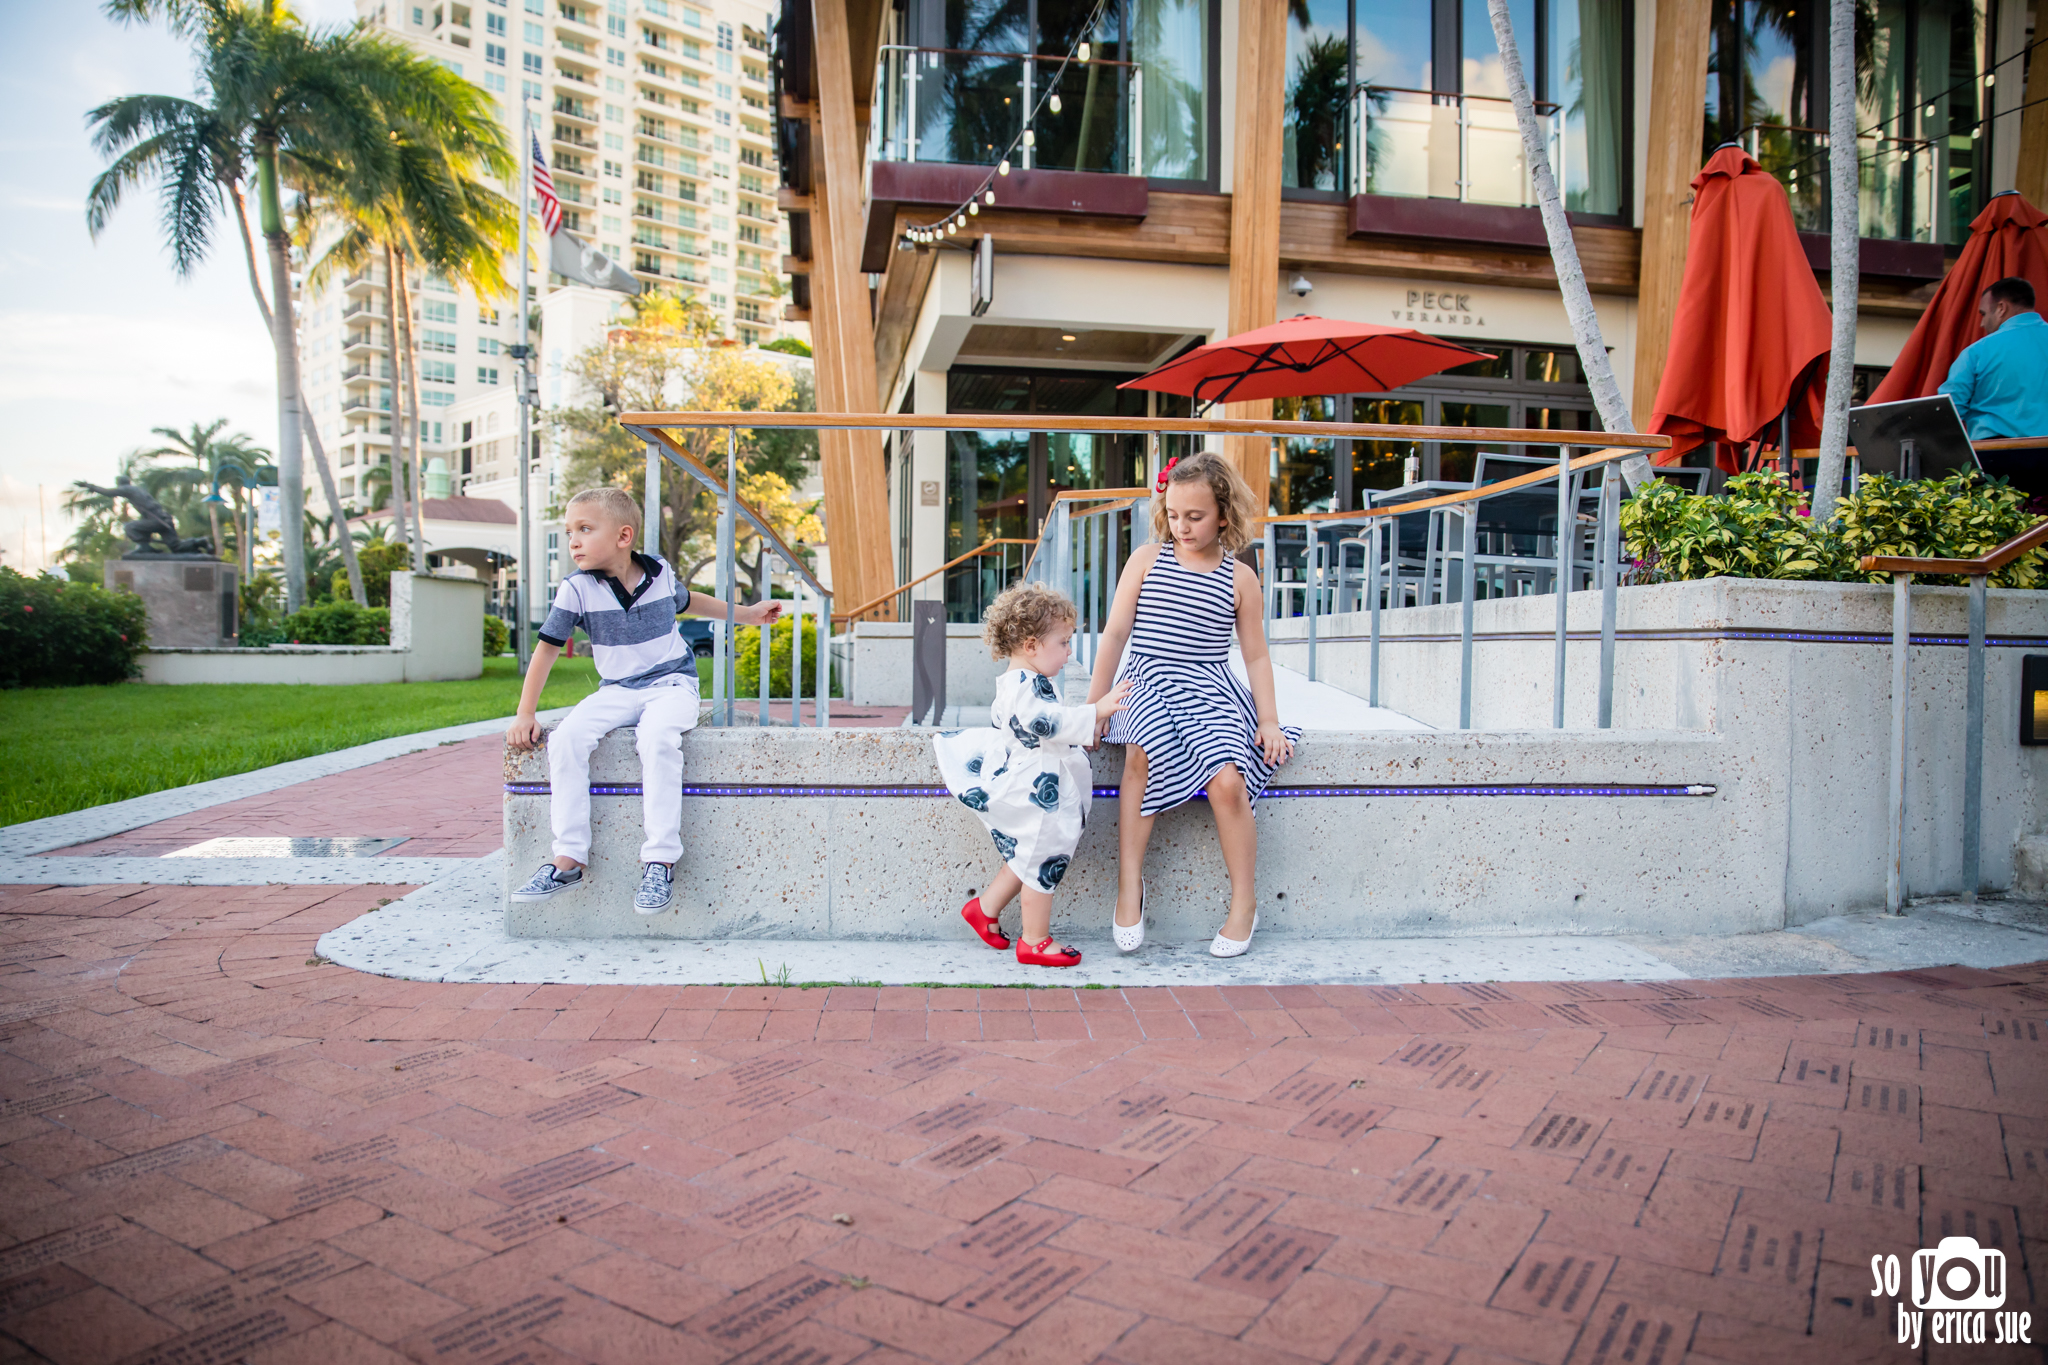 ft-lauderdale-lifestyle-family-photography-so-you-by-erica-sue-0331.jpg